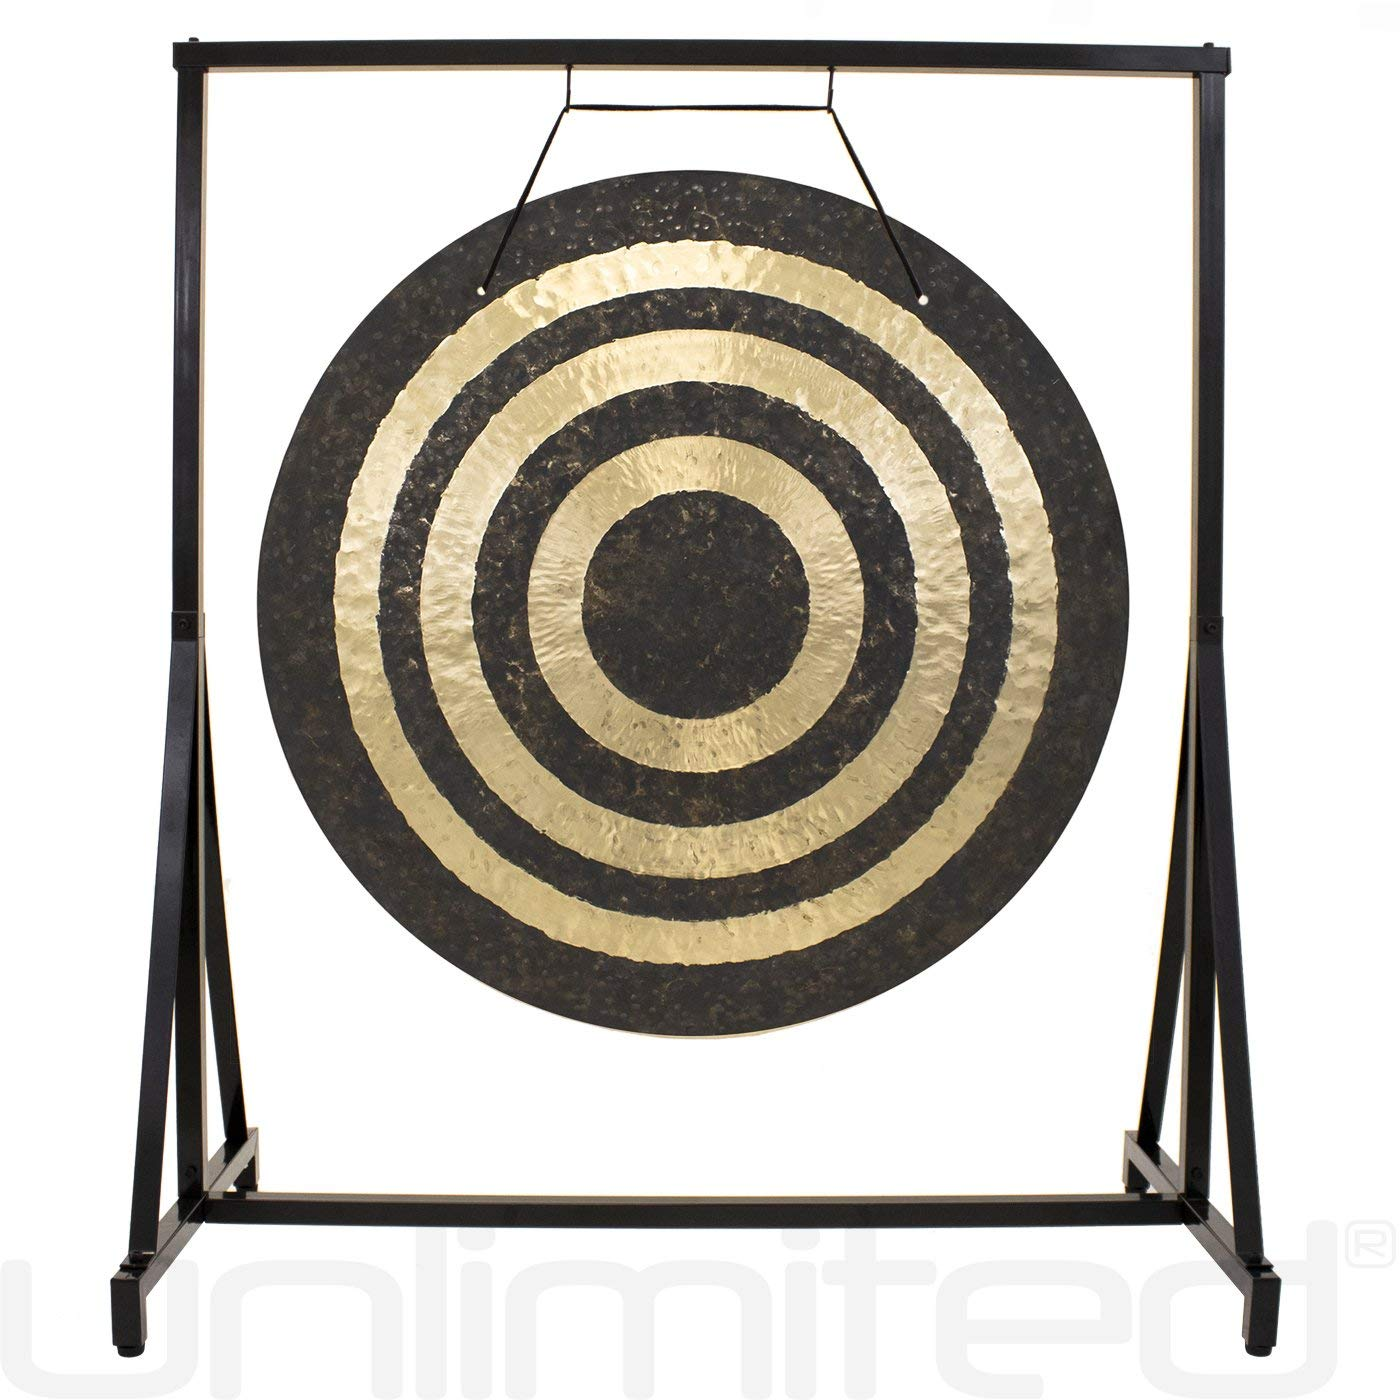 30'' to 40'' Gongs on the Everyday Miracle Gong Stand by Unlimited